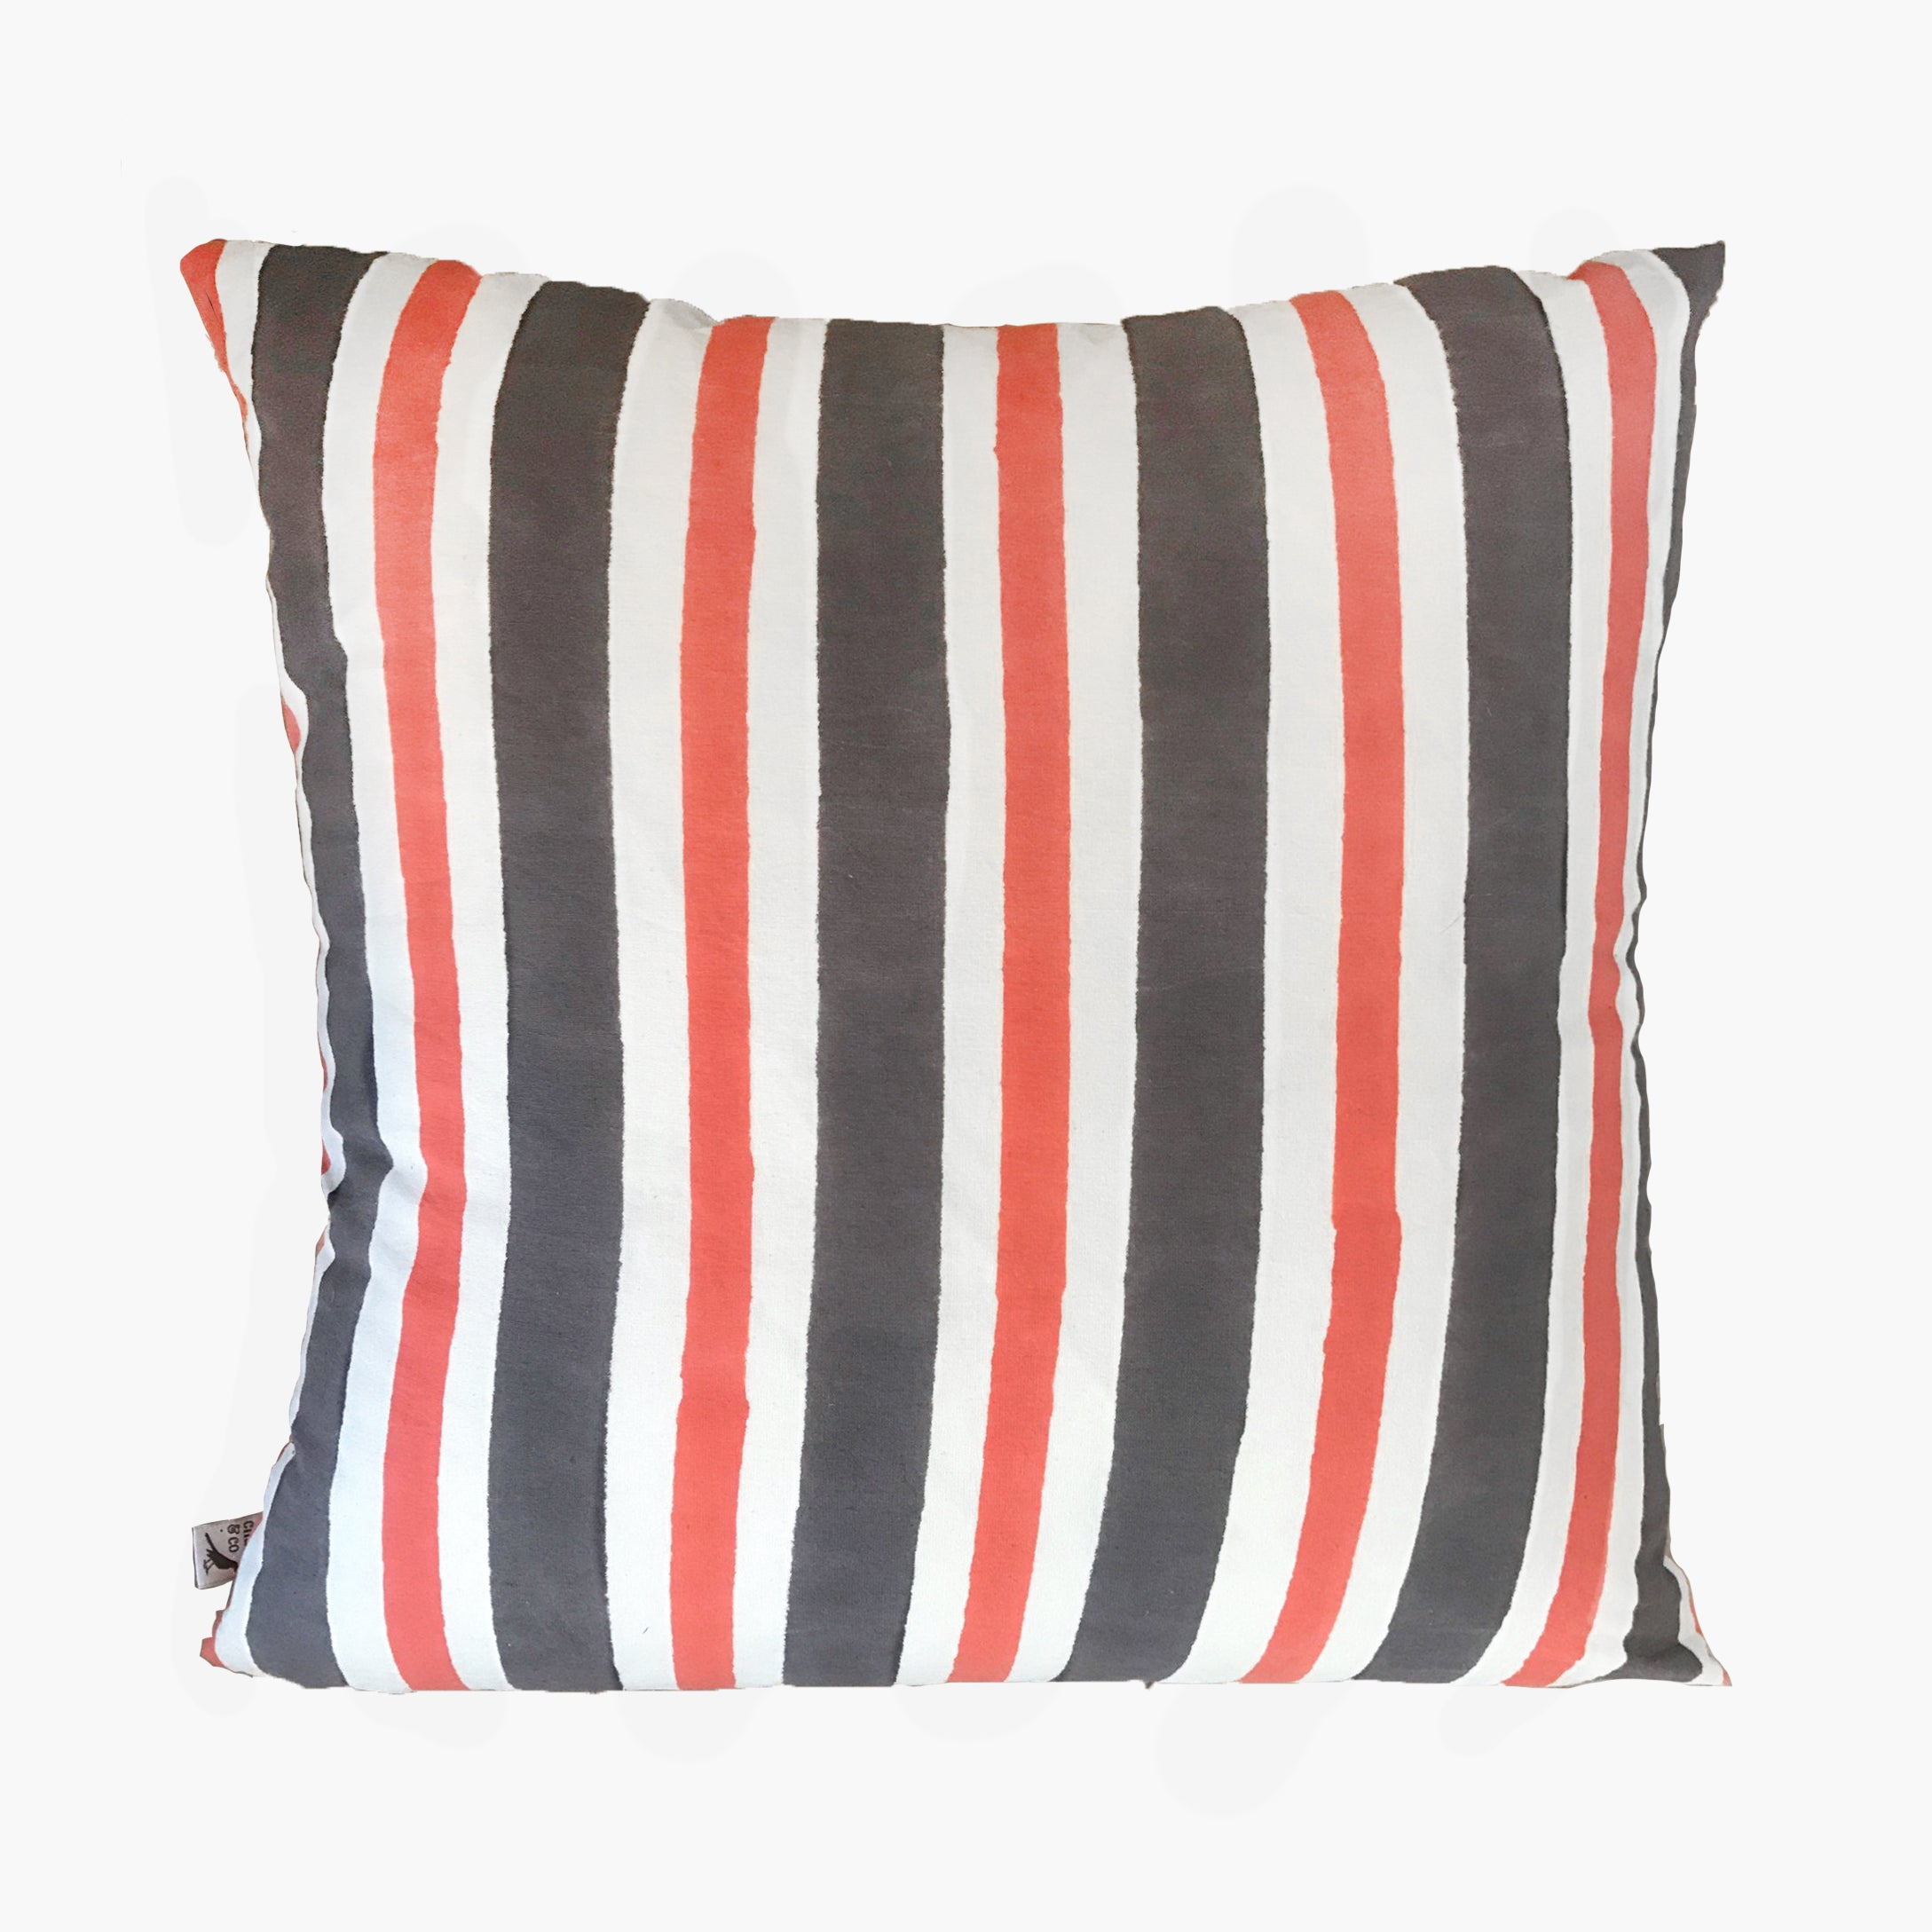 Chango & Co Grey and Orange Stripe Pilow